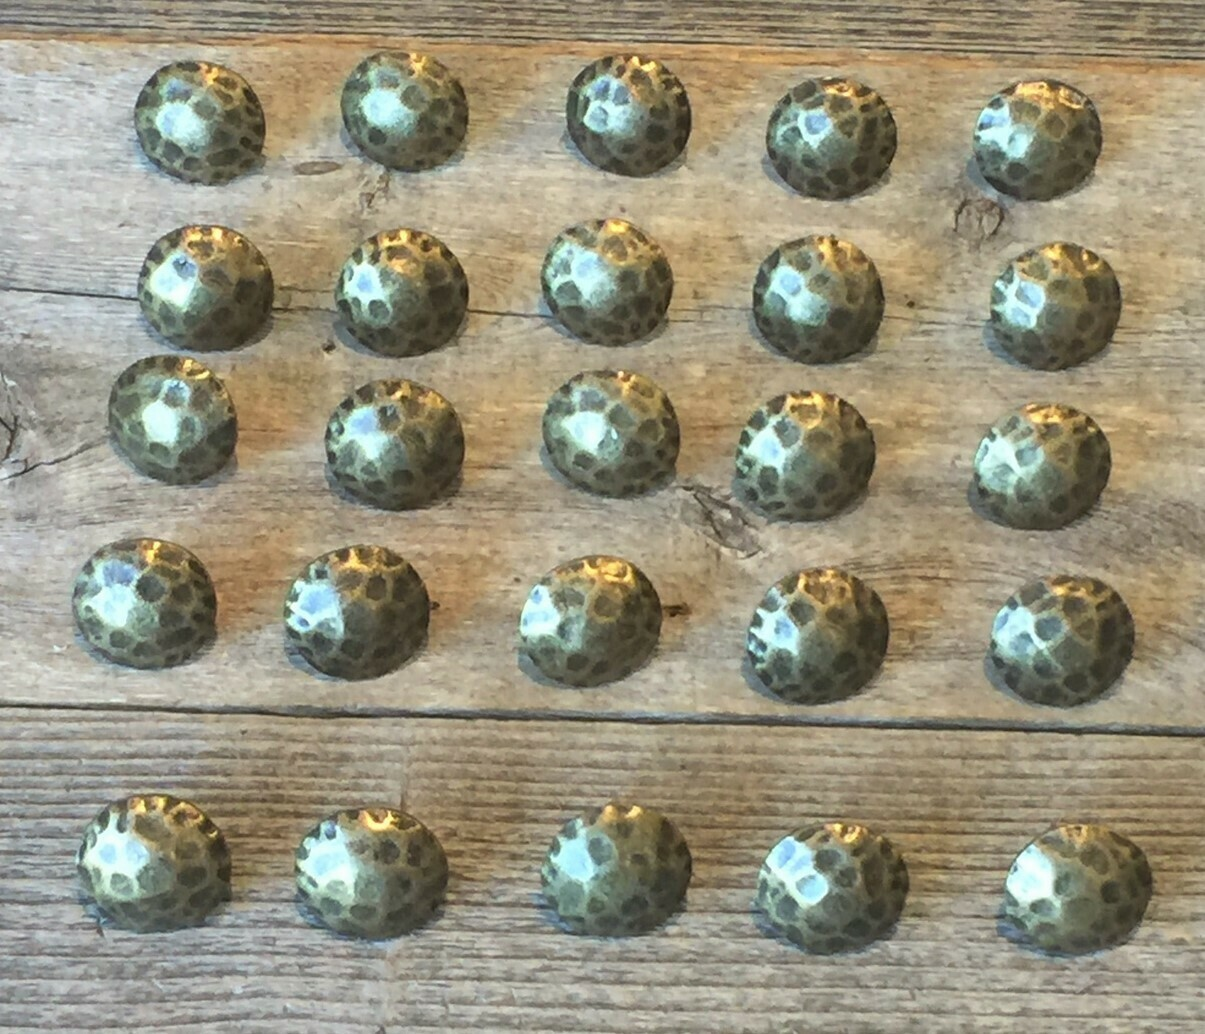 Clavos Decorative Nail Heads Rustic Worn Brass Finish 1